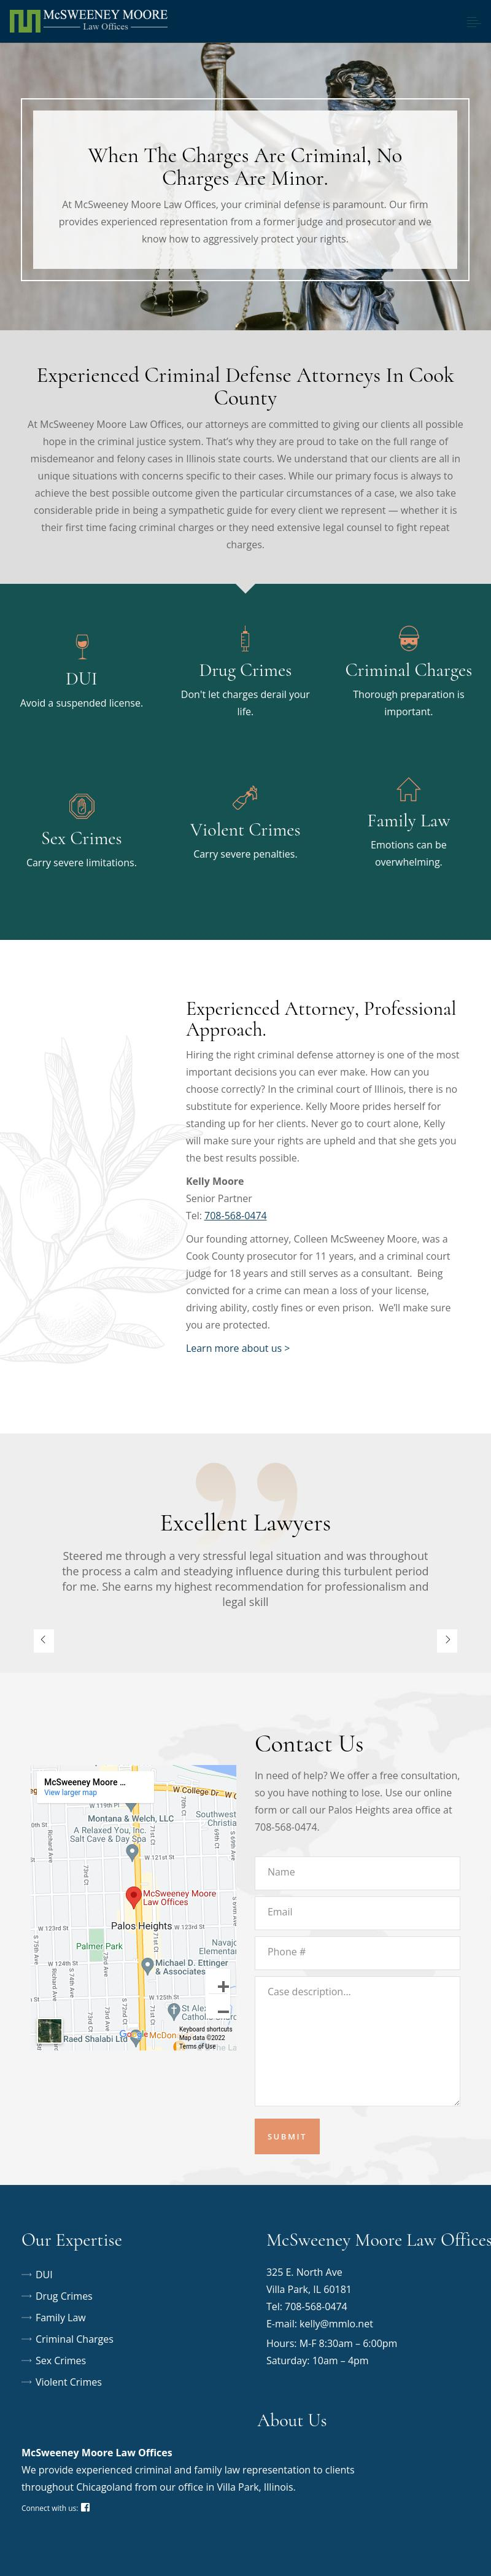 McSweeney Moore Law Offices - Palos Heights IL Lawyers